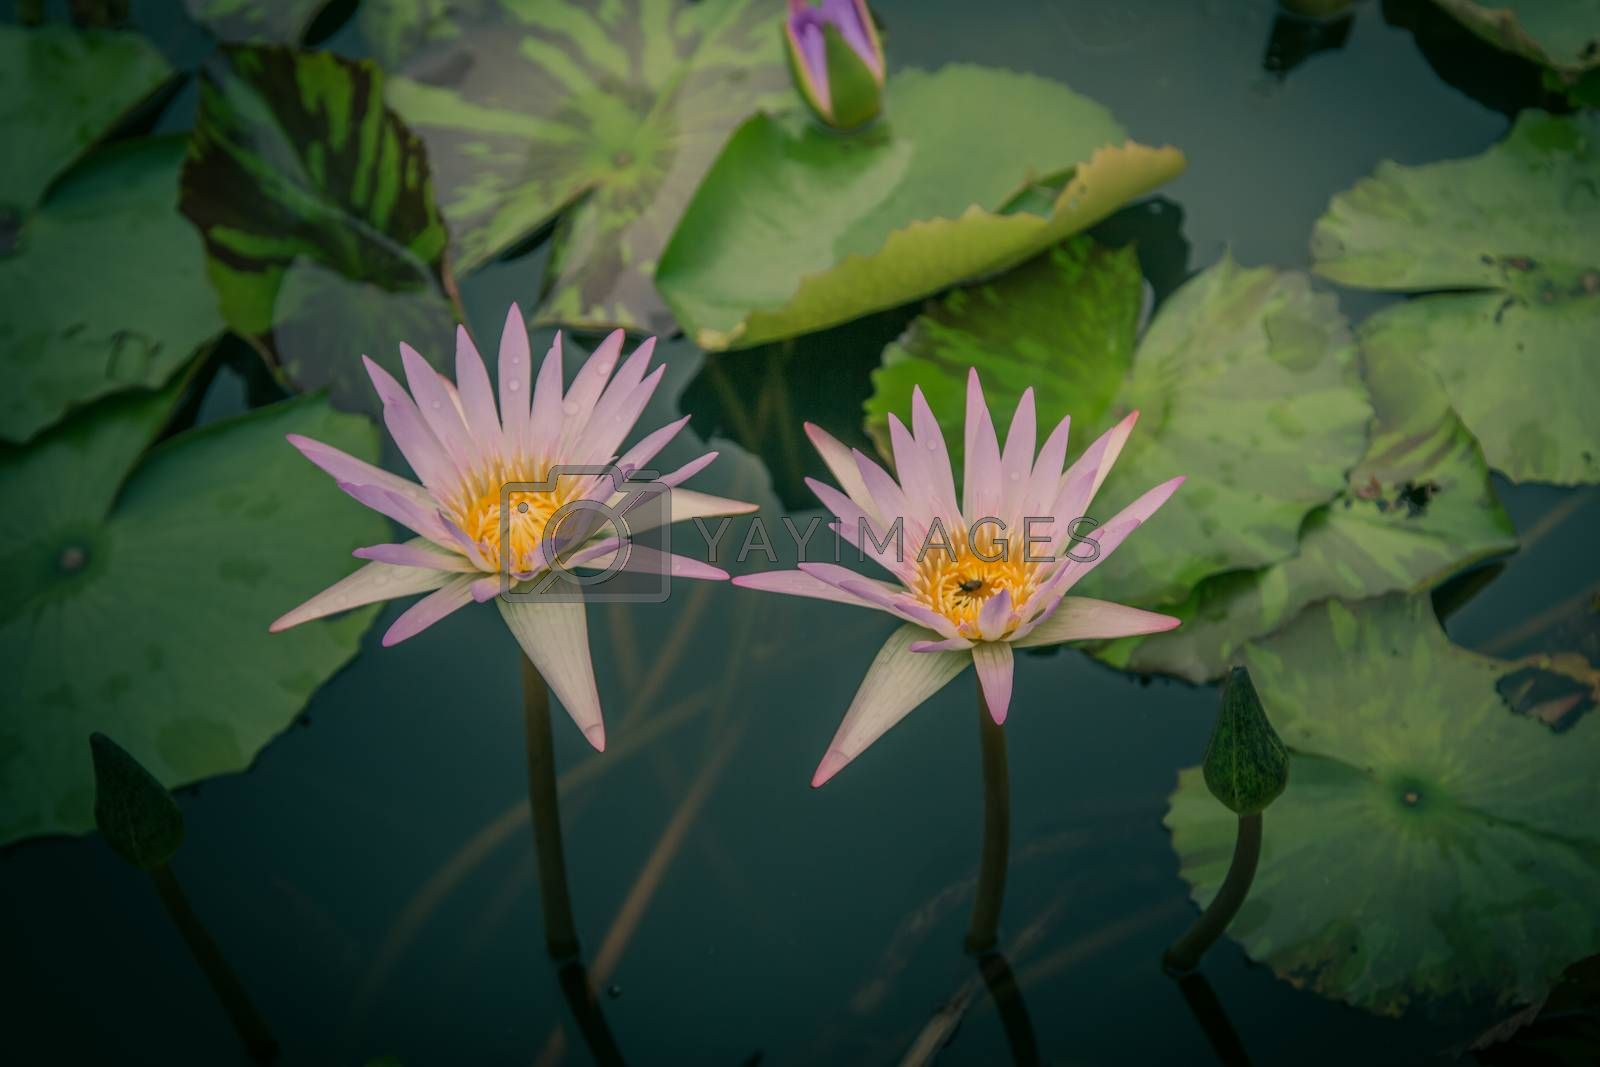 The beauty of the lotus in the pond